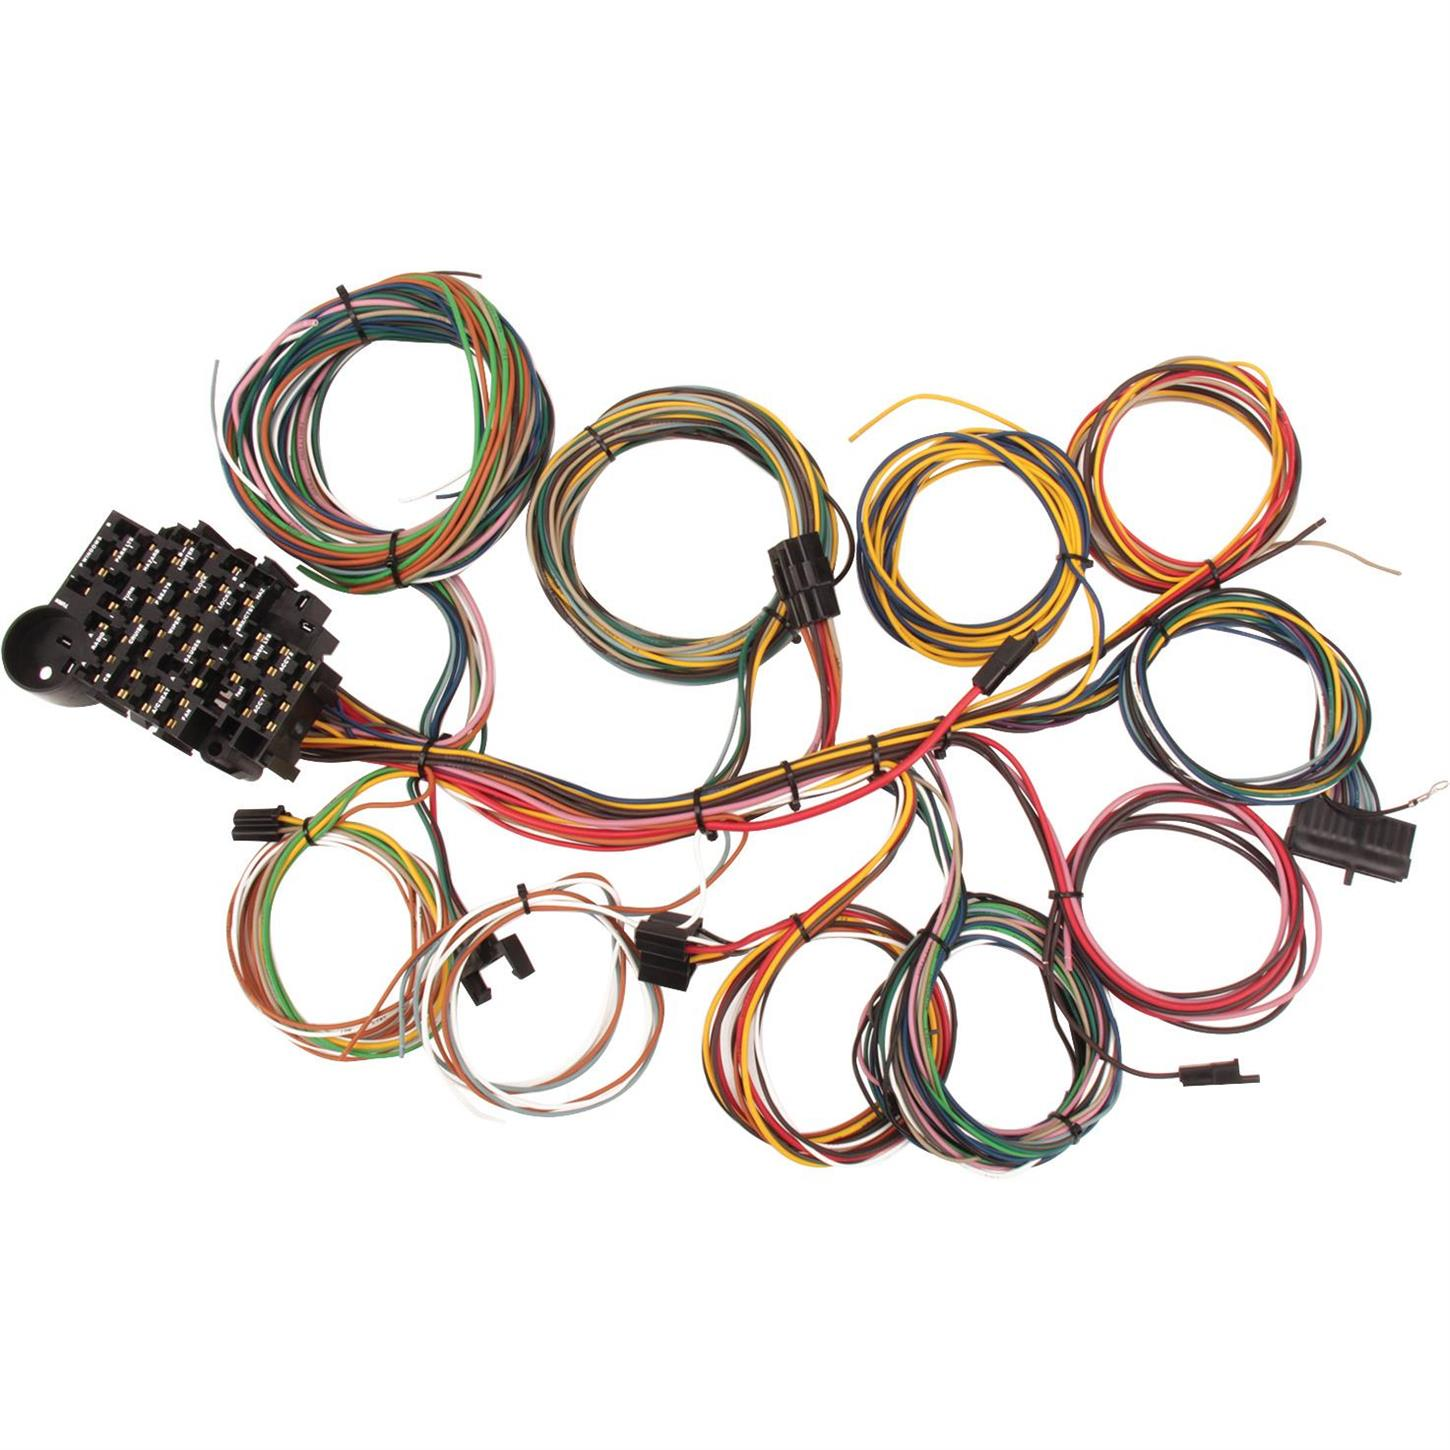 91064022_L1450_4a5a9e43 cdd2 4b2c 9c68 457f296054bd selecting a wiring harness for your street rod  at mr168.co